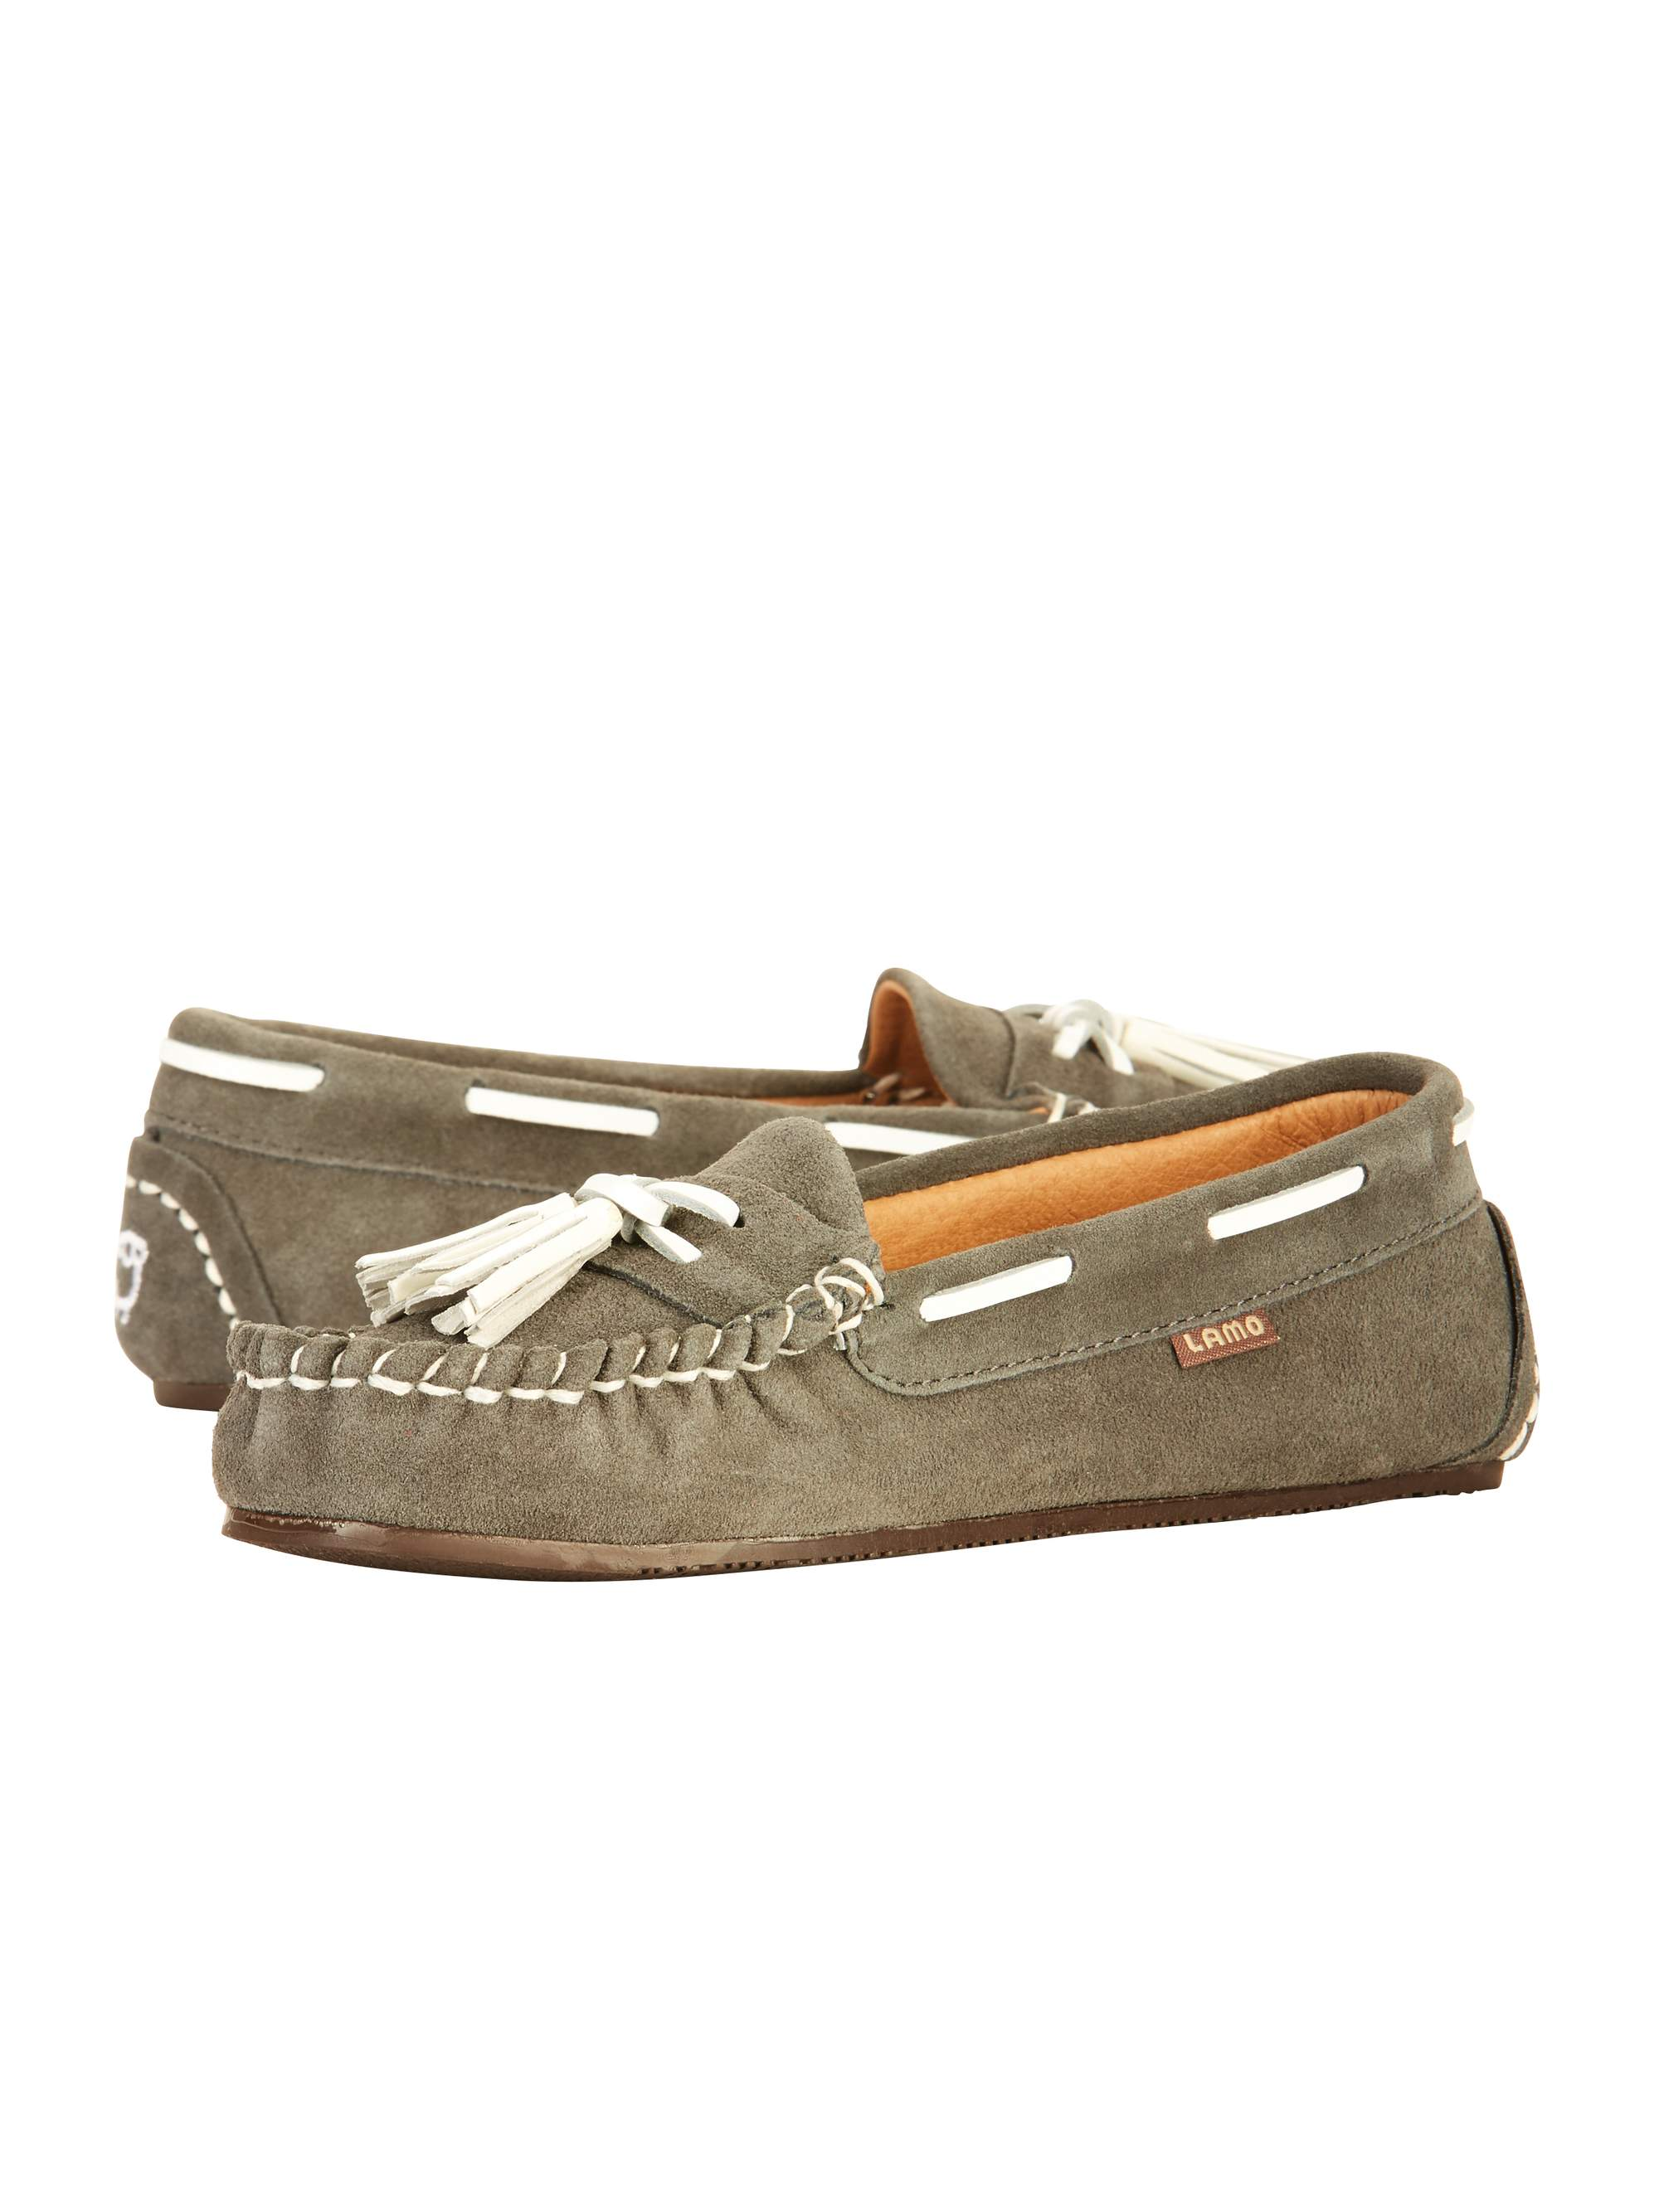 Lamo Leah Women's Moc Economical, stylish, and eye-catching shoes